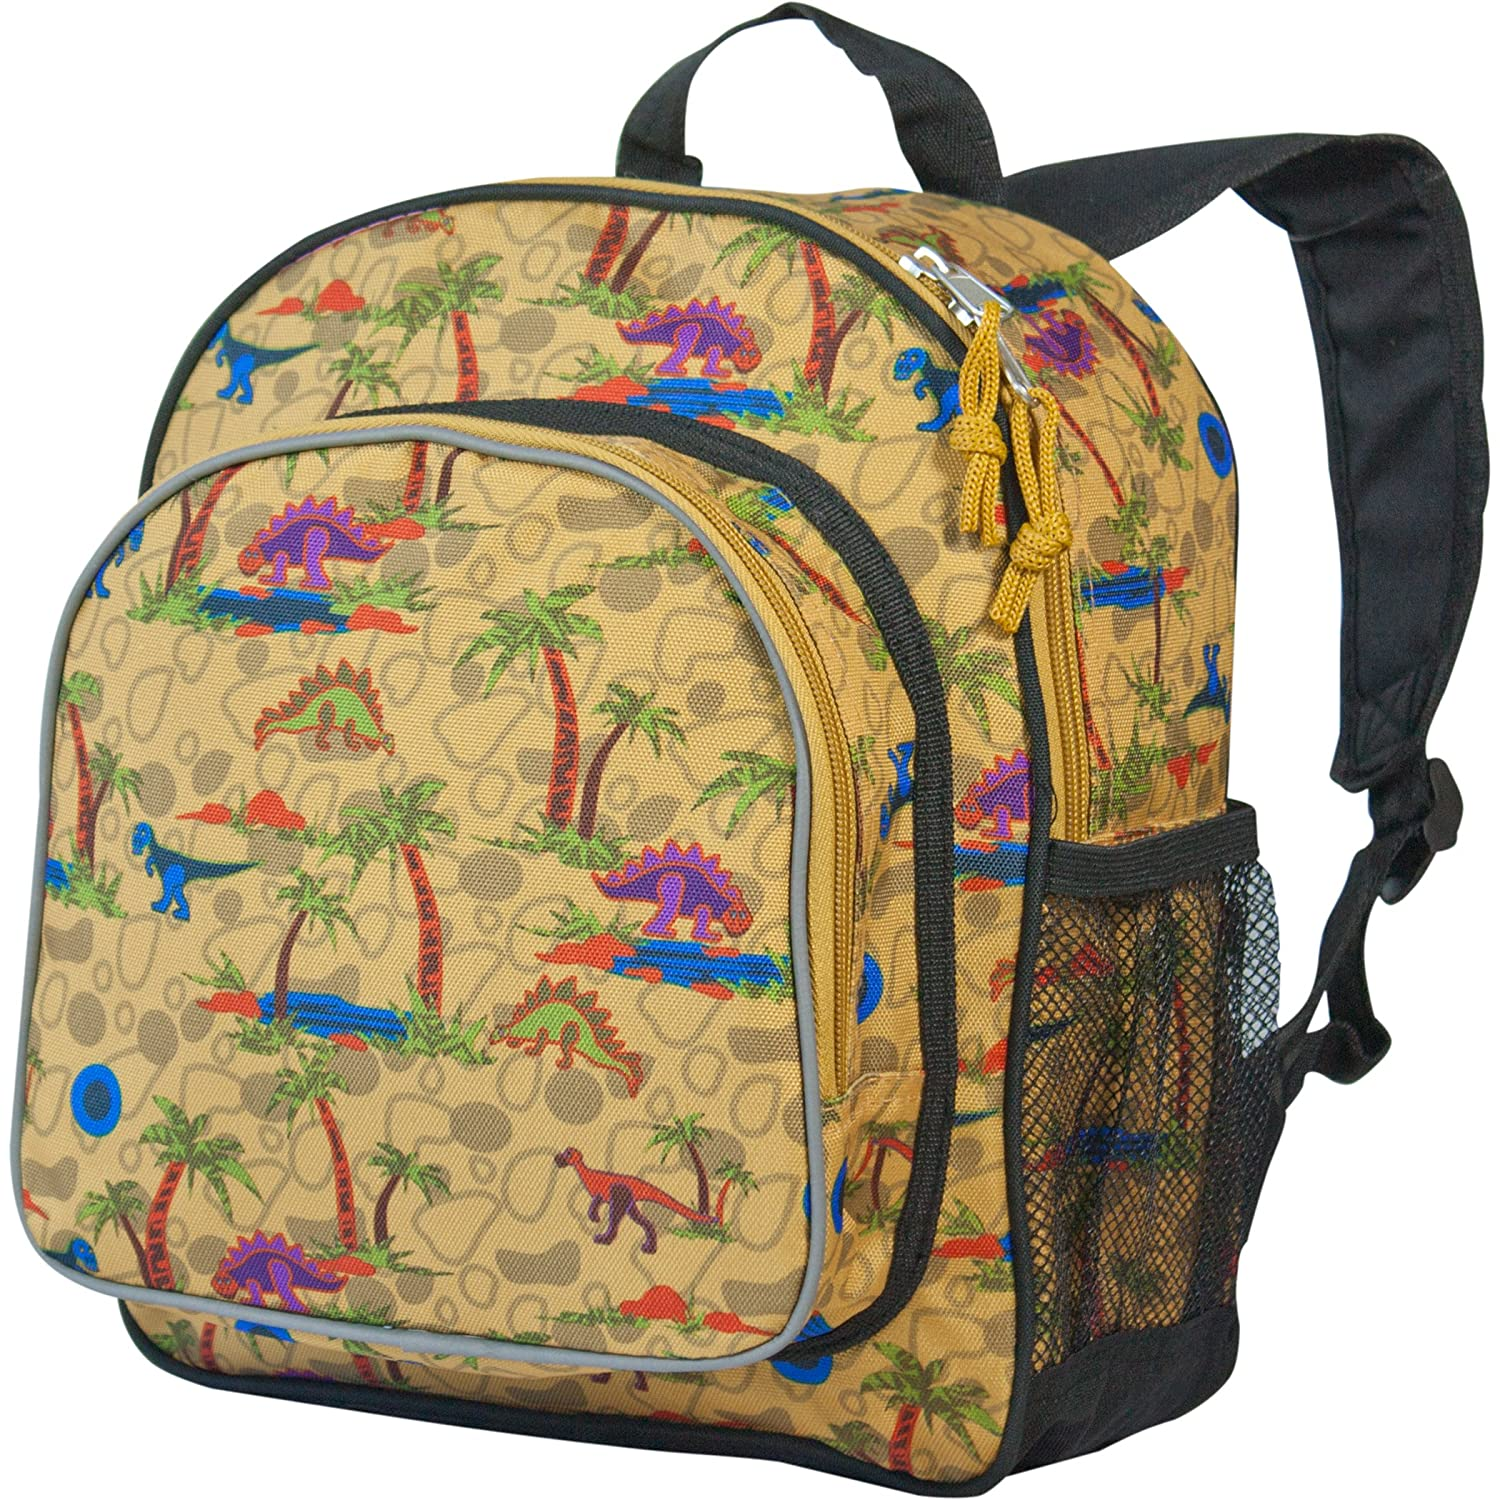 Wildkin Toddler Pack 'n Snack Backpack Dinosaurs